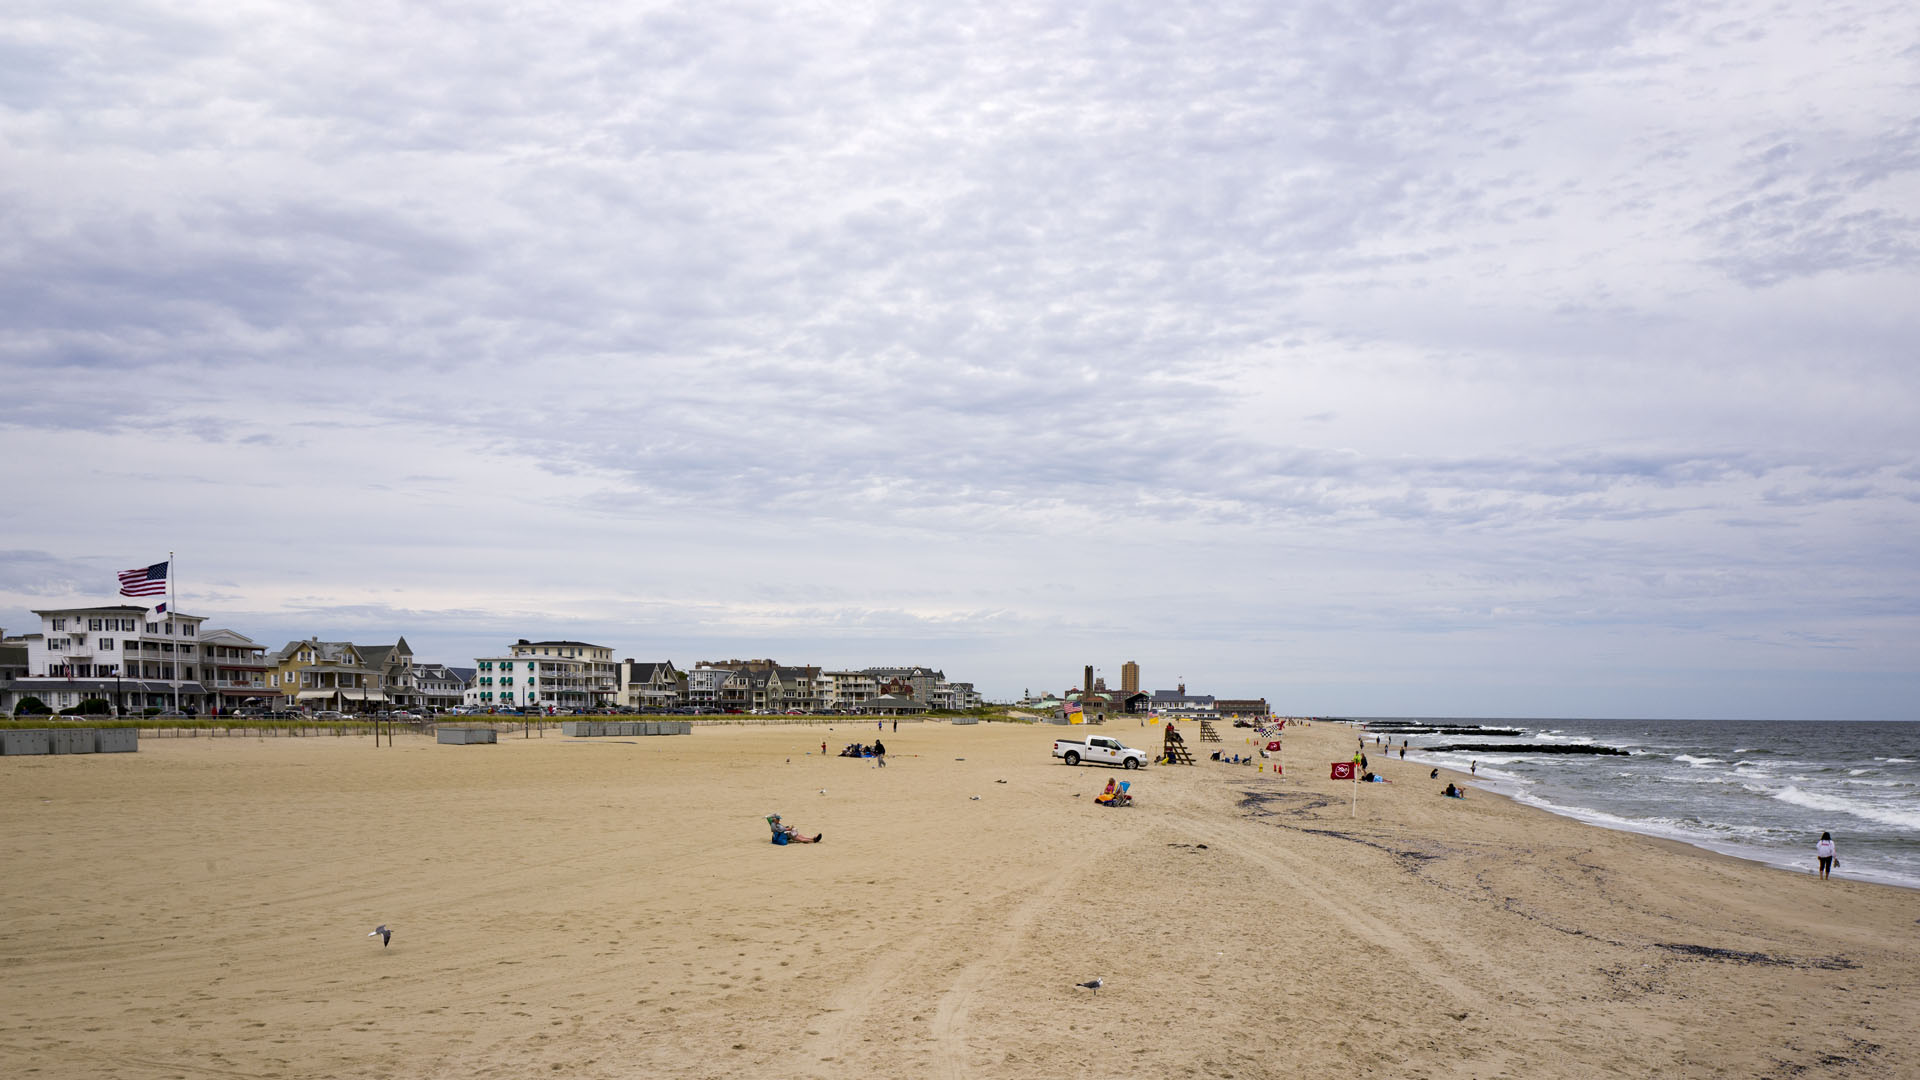 Strand in Ocean Grove - New Jersey